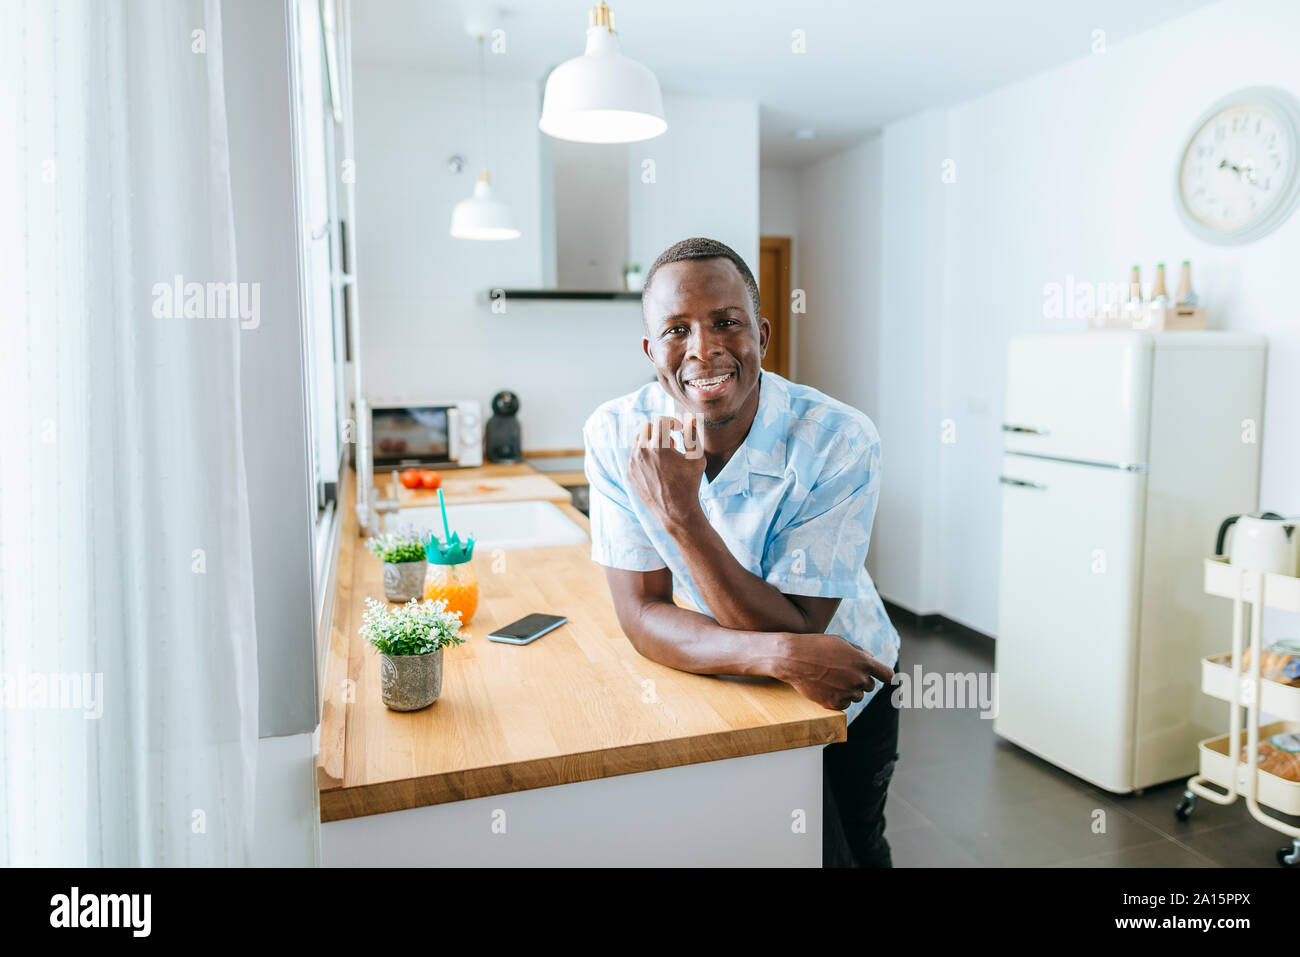 Portrait of smiling young man in kitchen at home Stock Photo